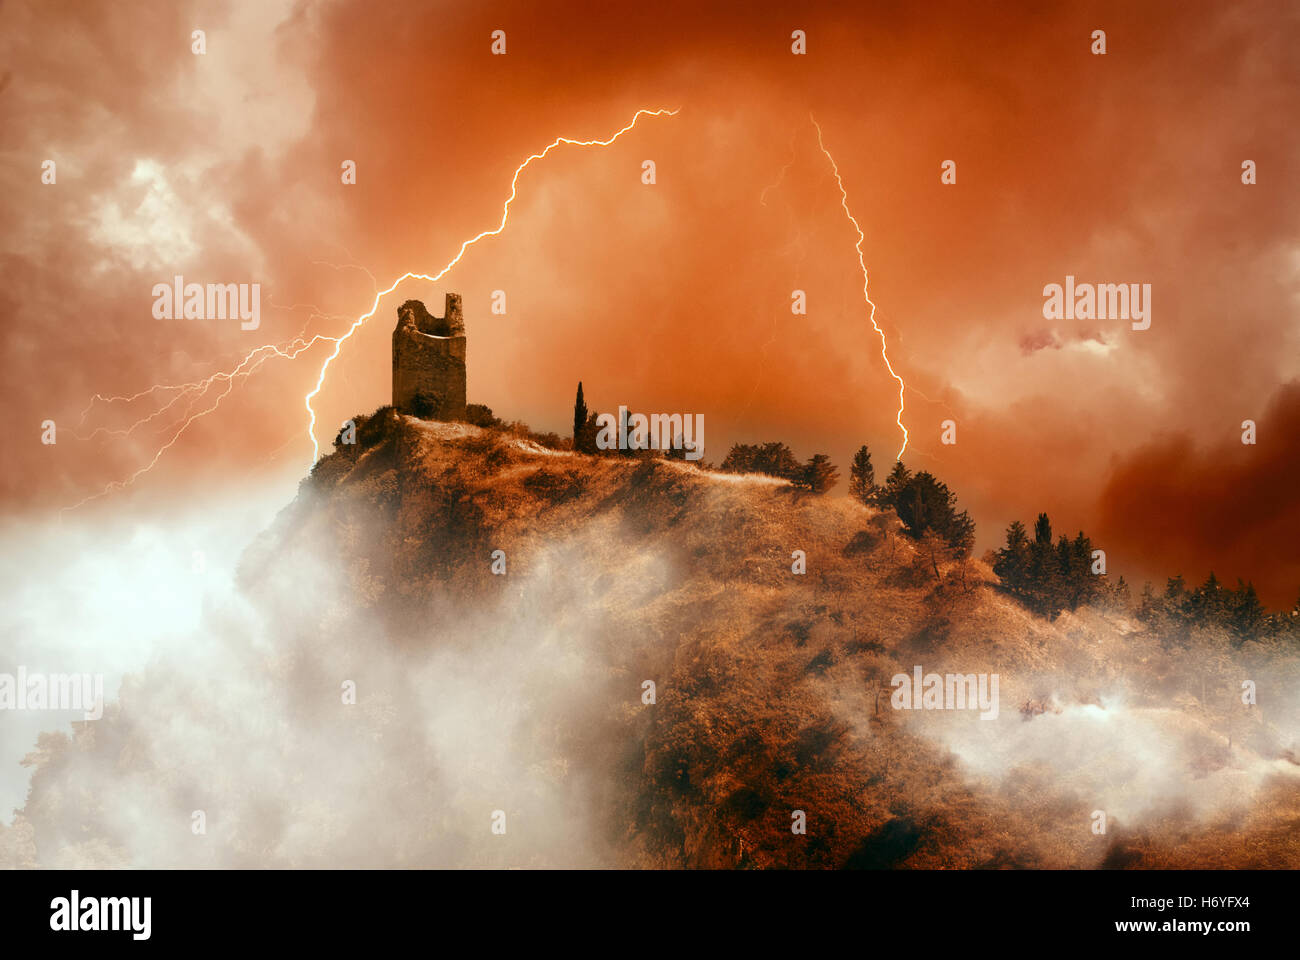 old tower on the mountain with lightning - Stock Image